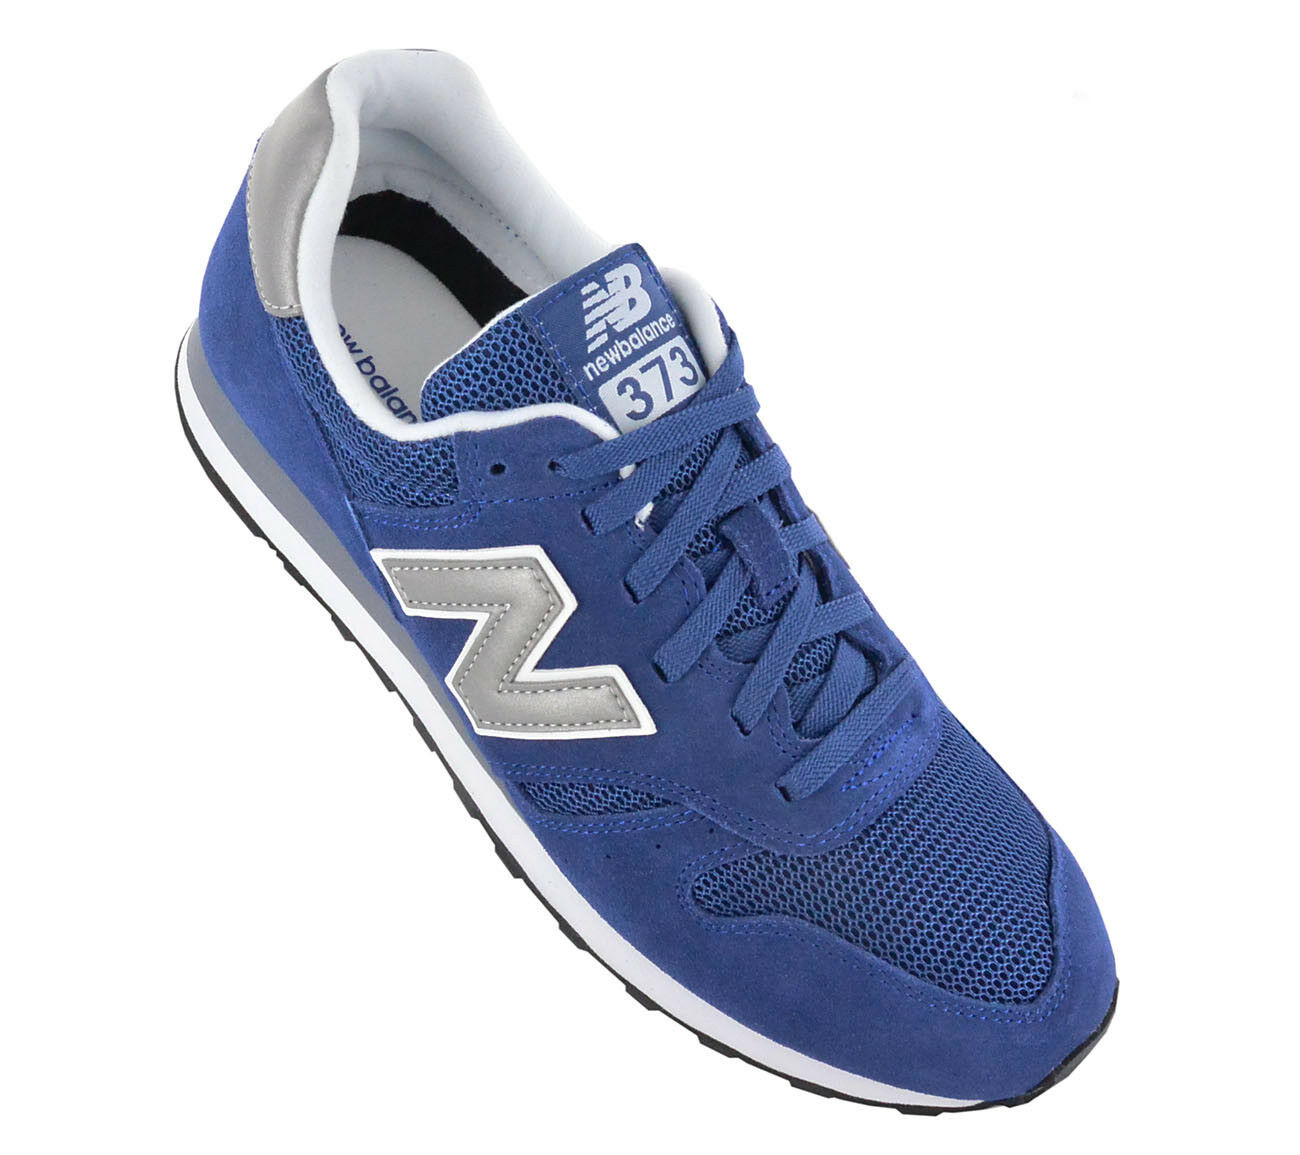 NEW New Balance Classics ML373blue Men''s shoes Trainers Sneakers SALE